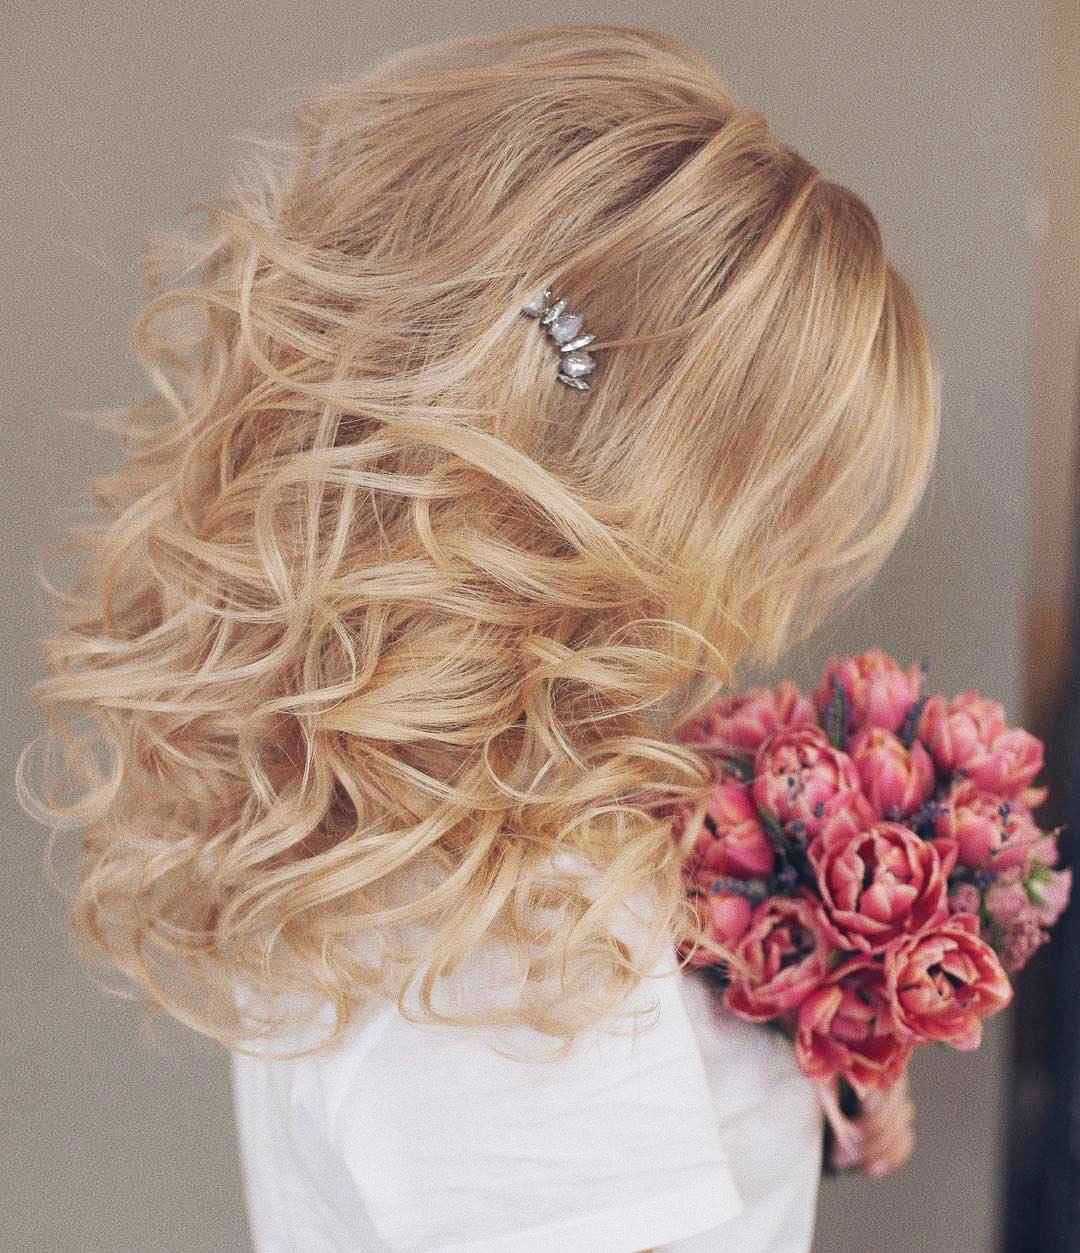 Hairstyles for prom for medium hair 2019-2020 photo 6